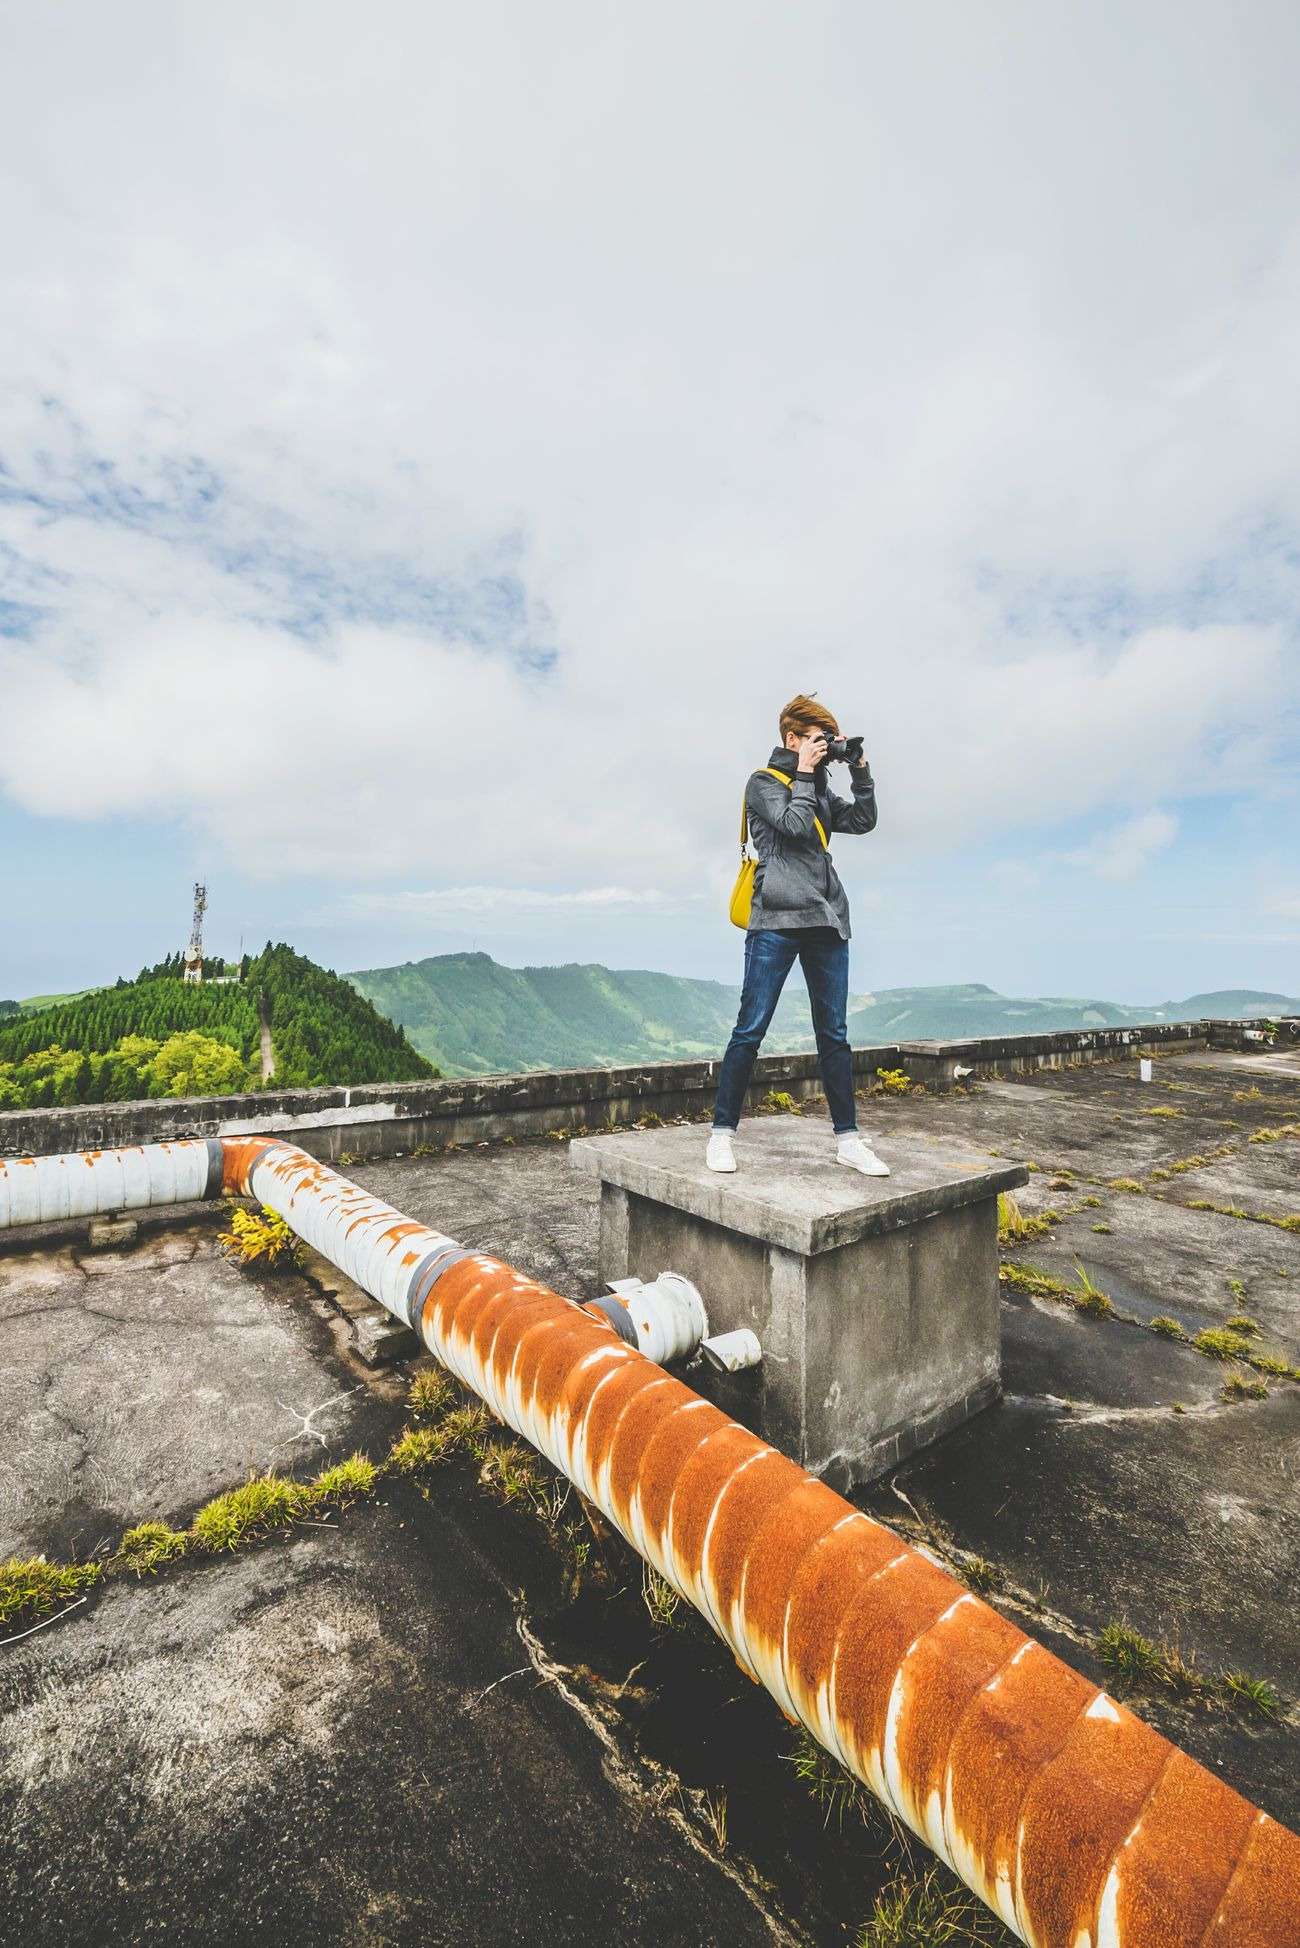 Exploring Explore On The Roof Rooftop Rooftop View  Taking Pictures Monte Palace Azores